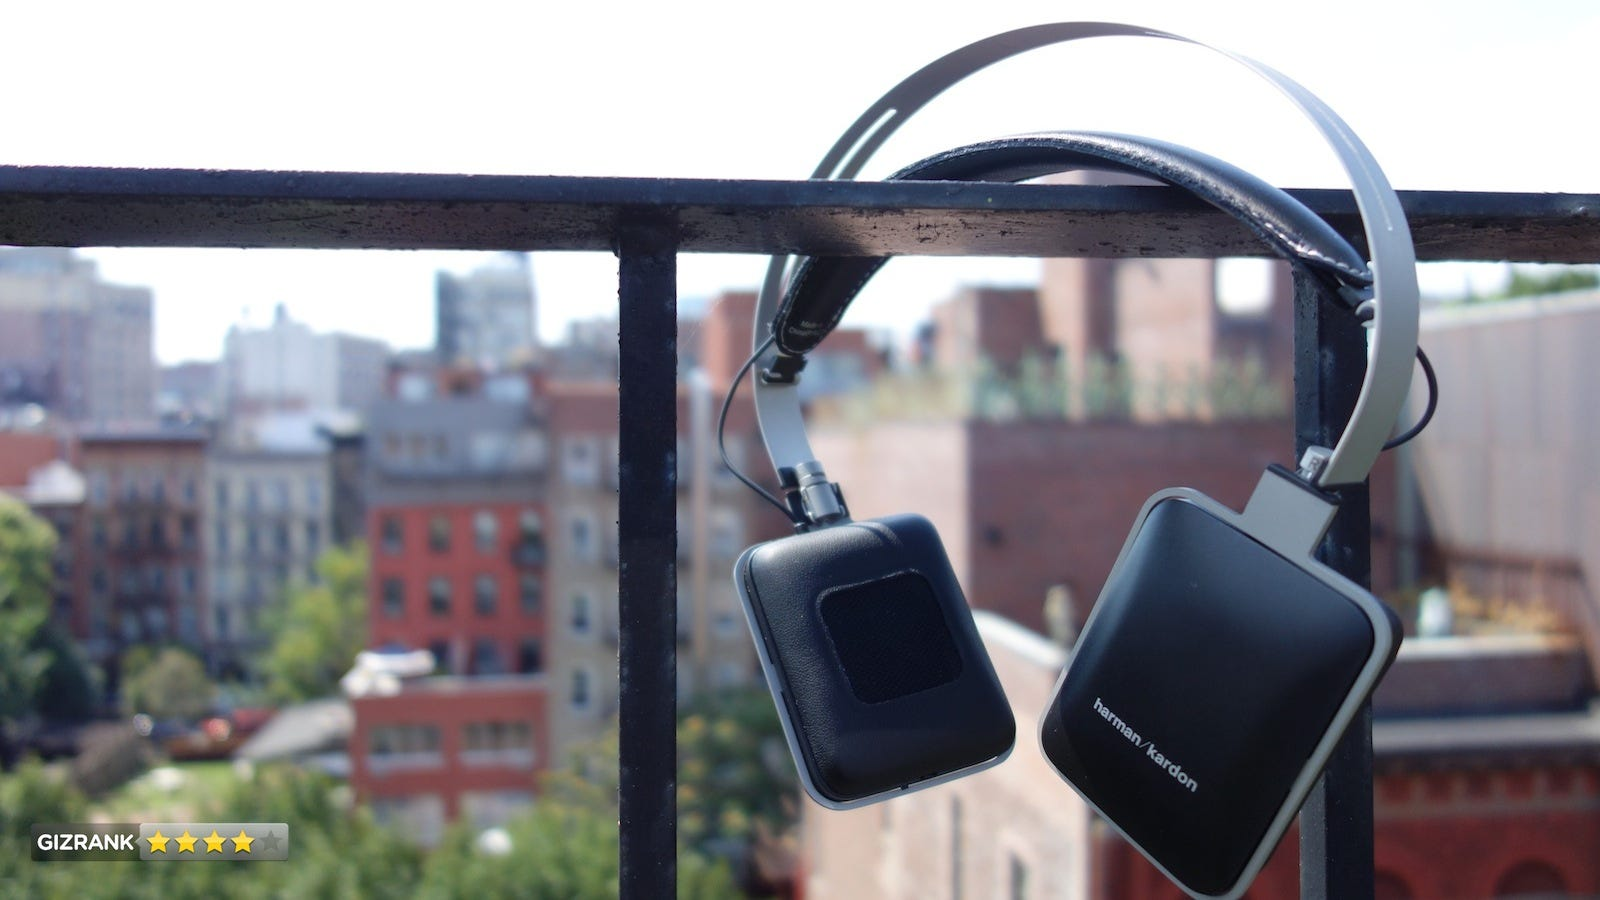 android usb earbuds with microphone - Harman Kardon CL Review: These Headphones Can Handle All Your Listening Needs